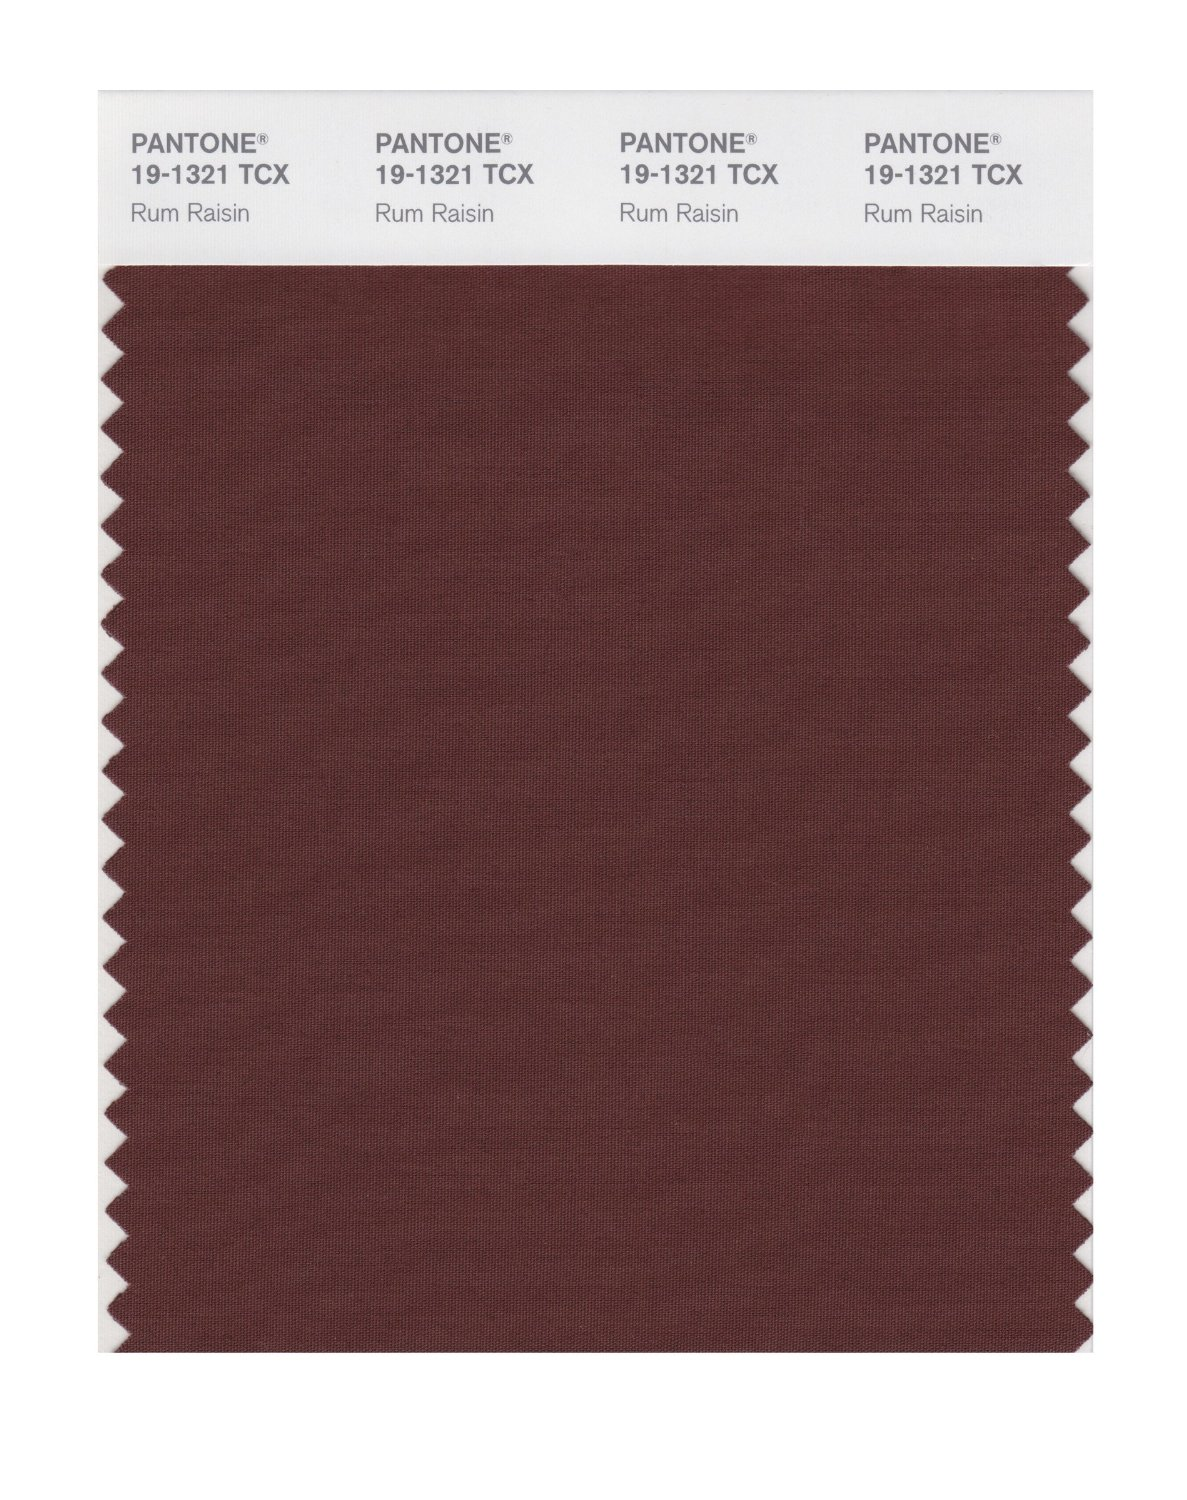 Pantone Smart Swatch 19-1321 Rum Raisin